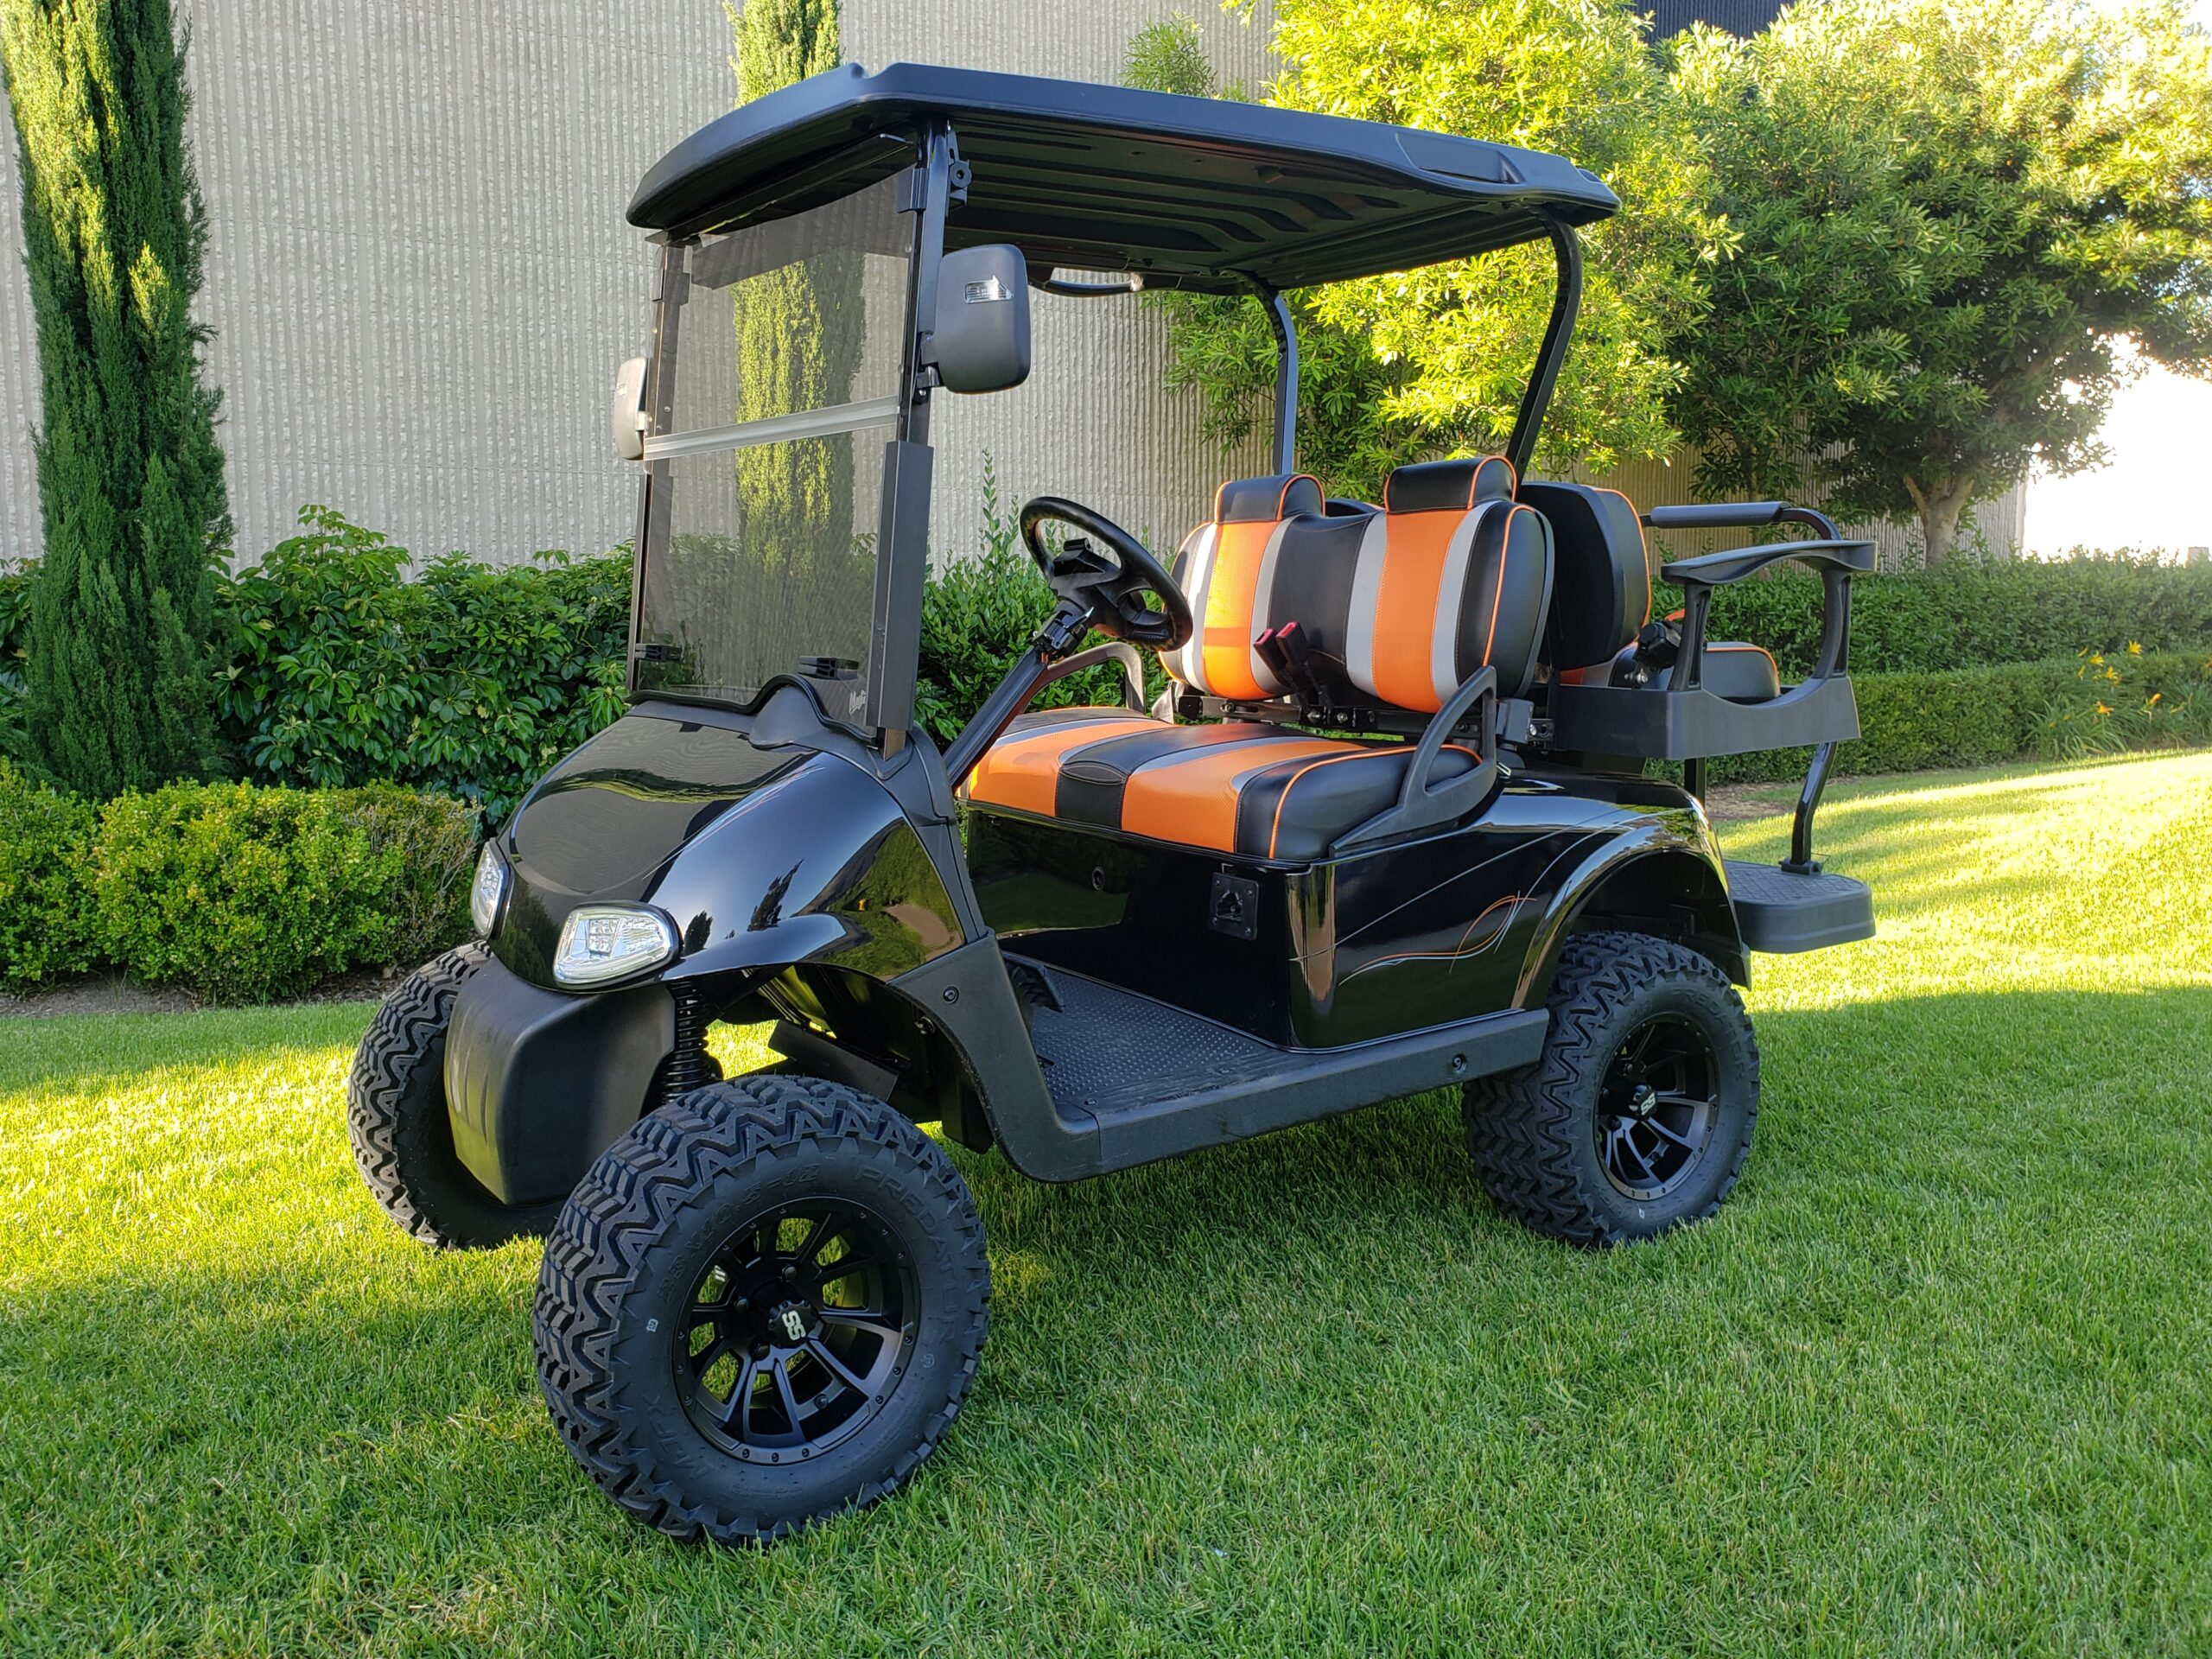 Ezgo RXV Lifted 4 Passenger Golf Cart- Black